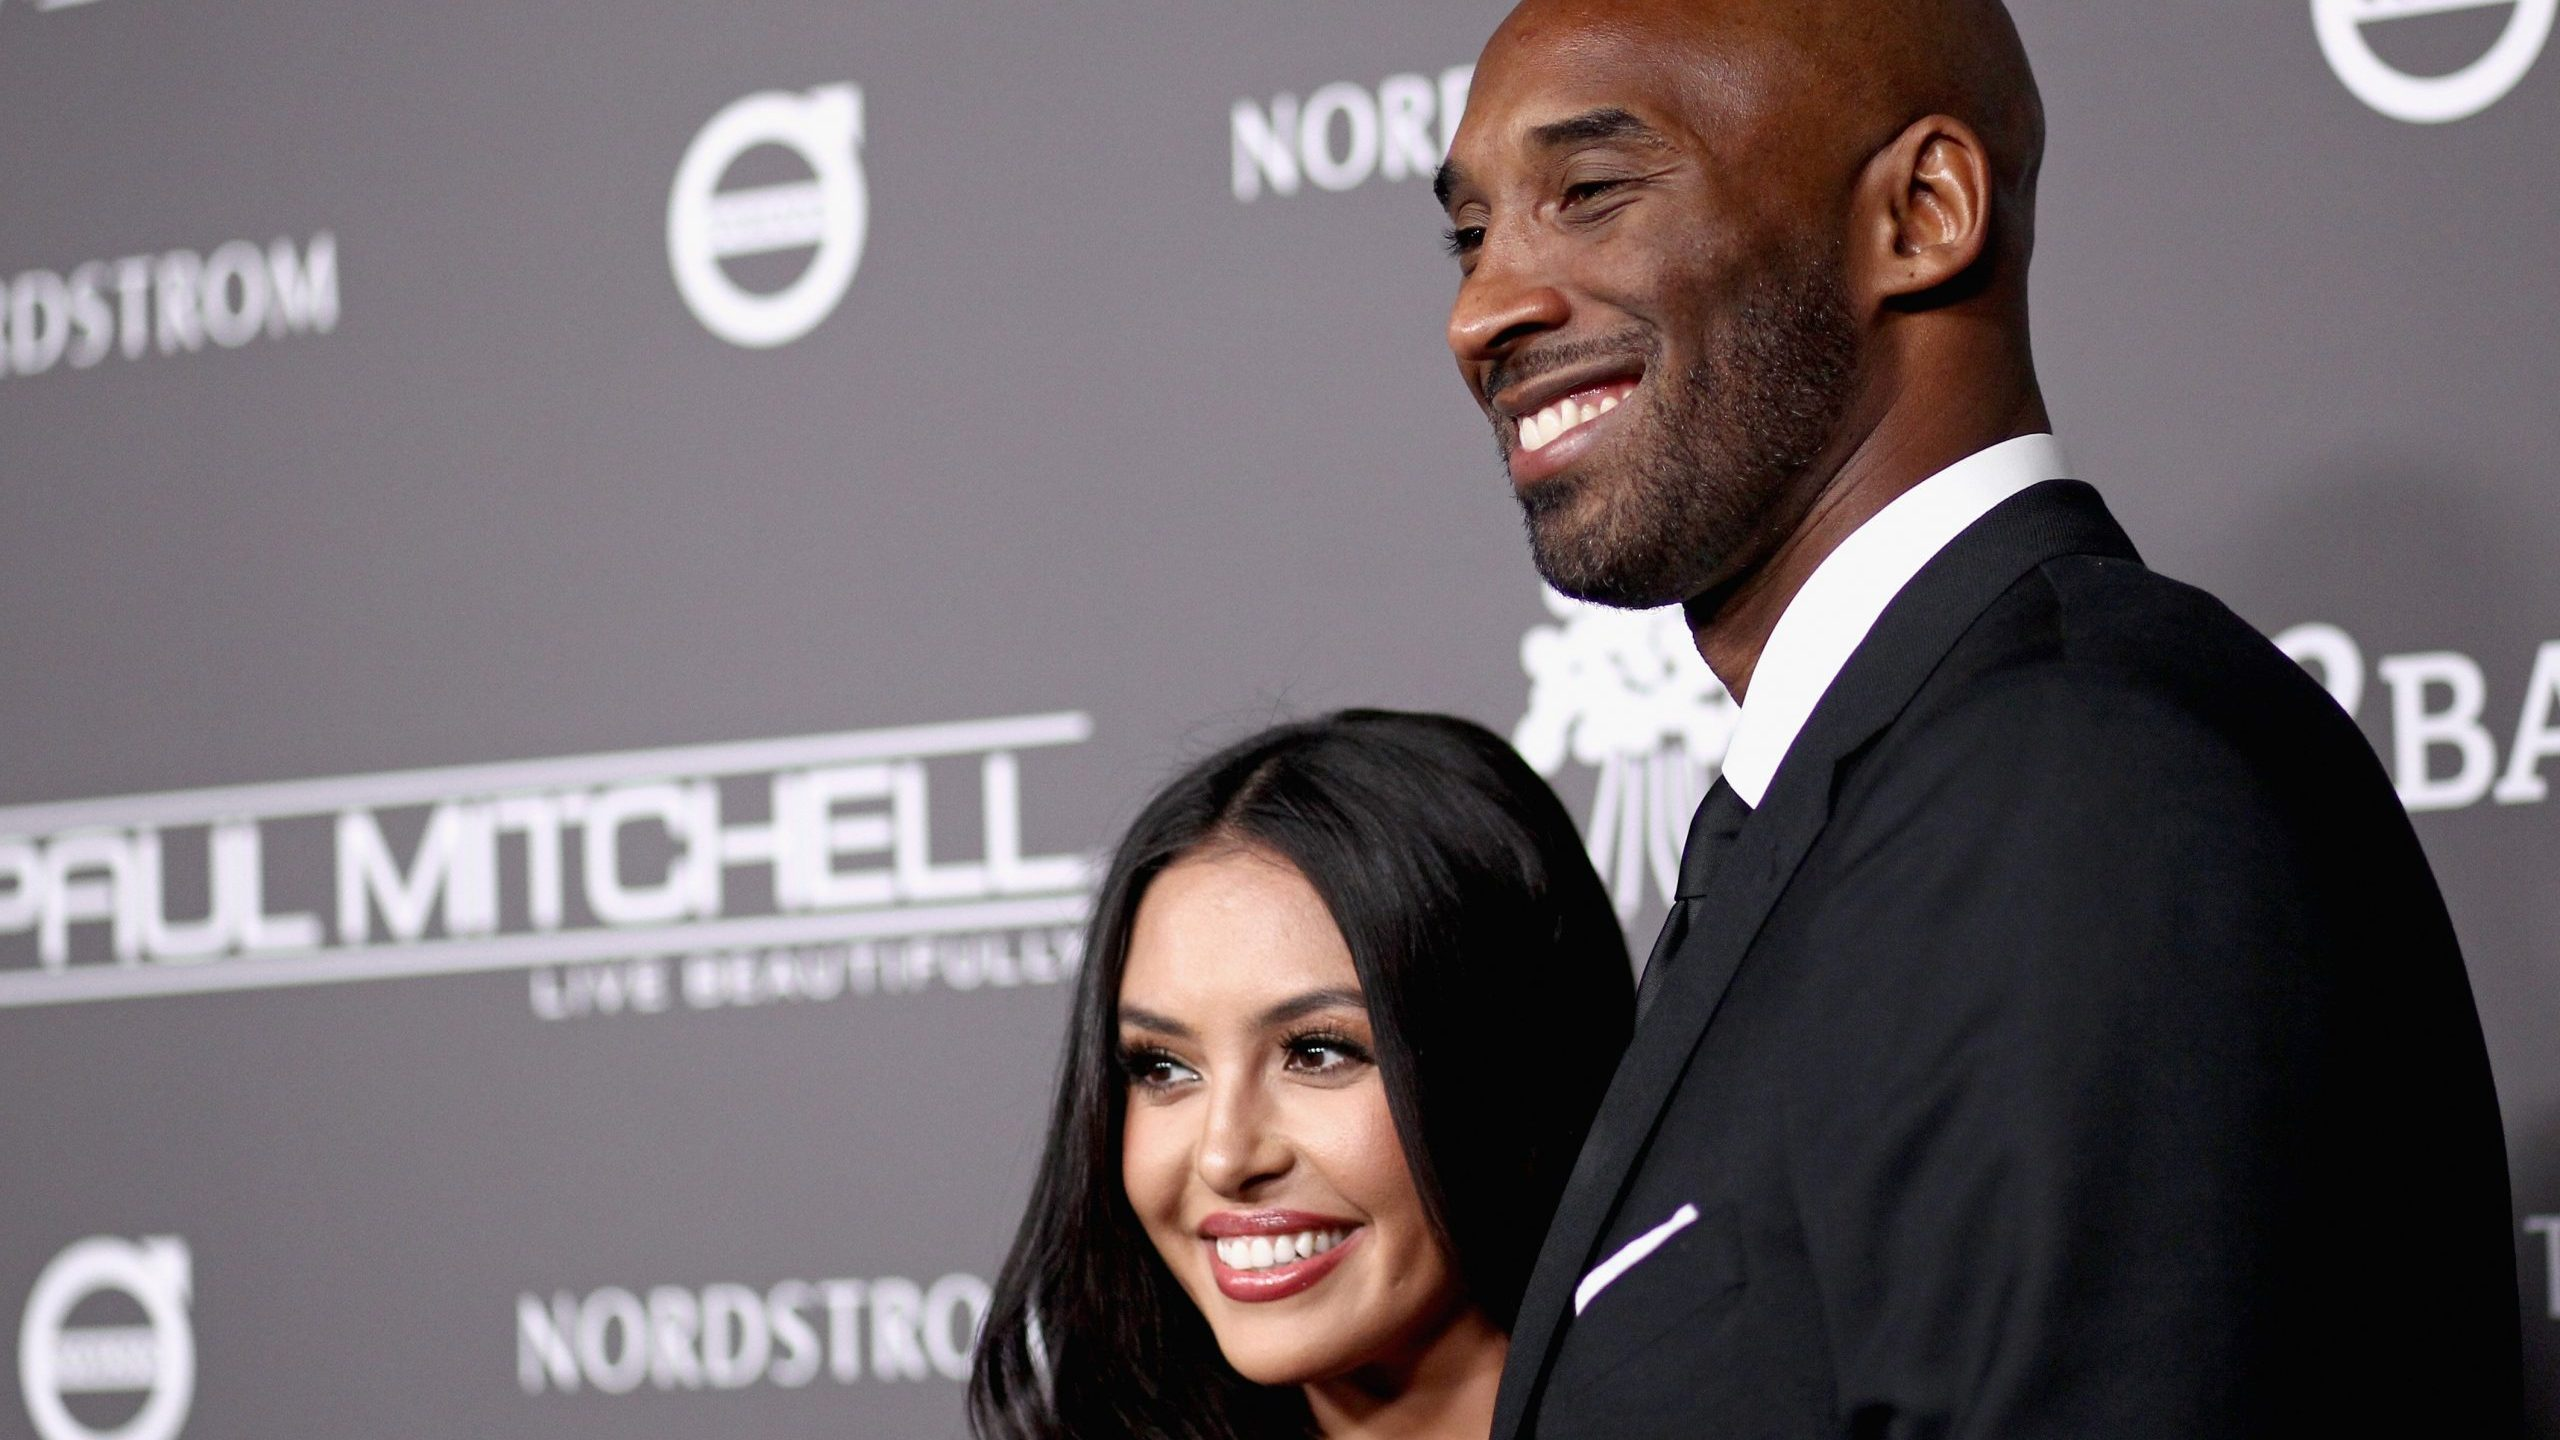 Vanessa and Kobe Bryant attend a gala on Nov. 10, 2018, in Culver City, California. (Credit: Tommaso Boddi/Getty Images for Baby2Baby)